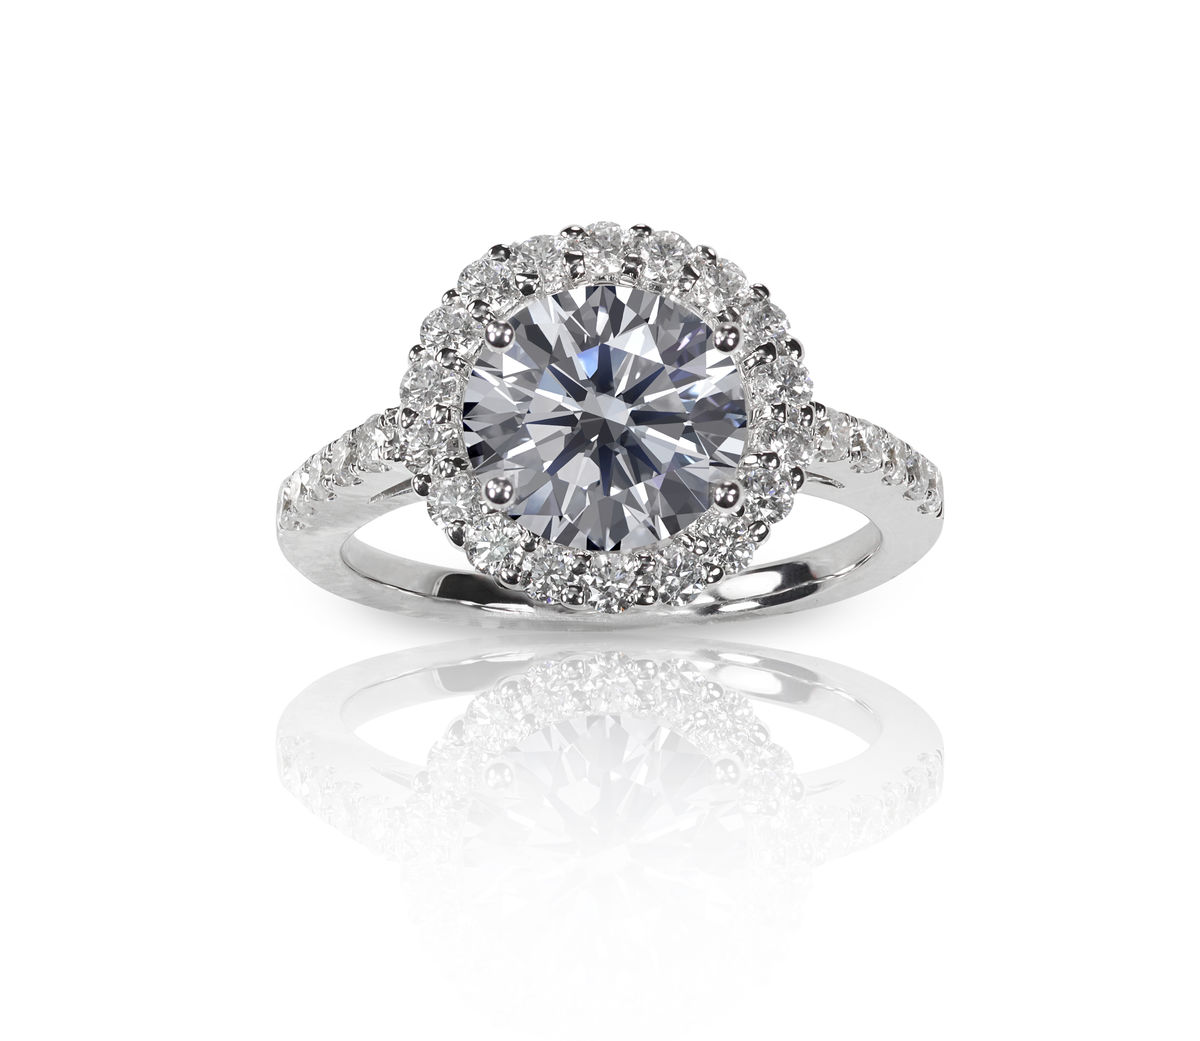 An Expert Guide To Selecting The Perfect Engagement Ring